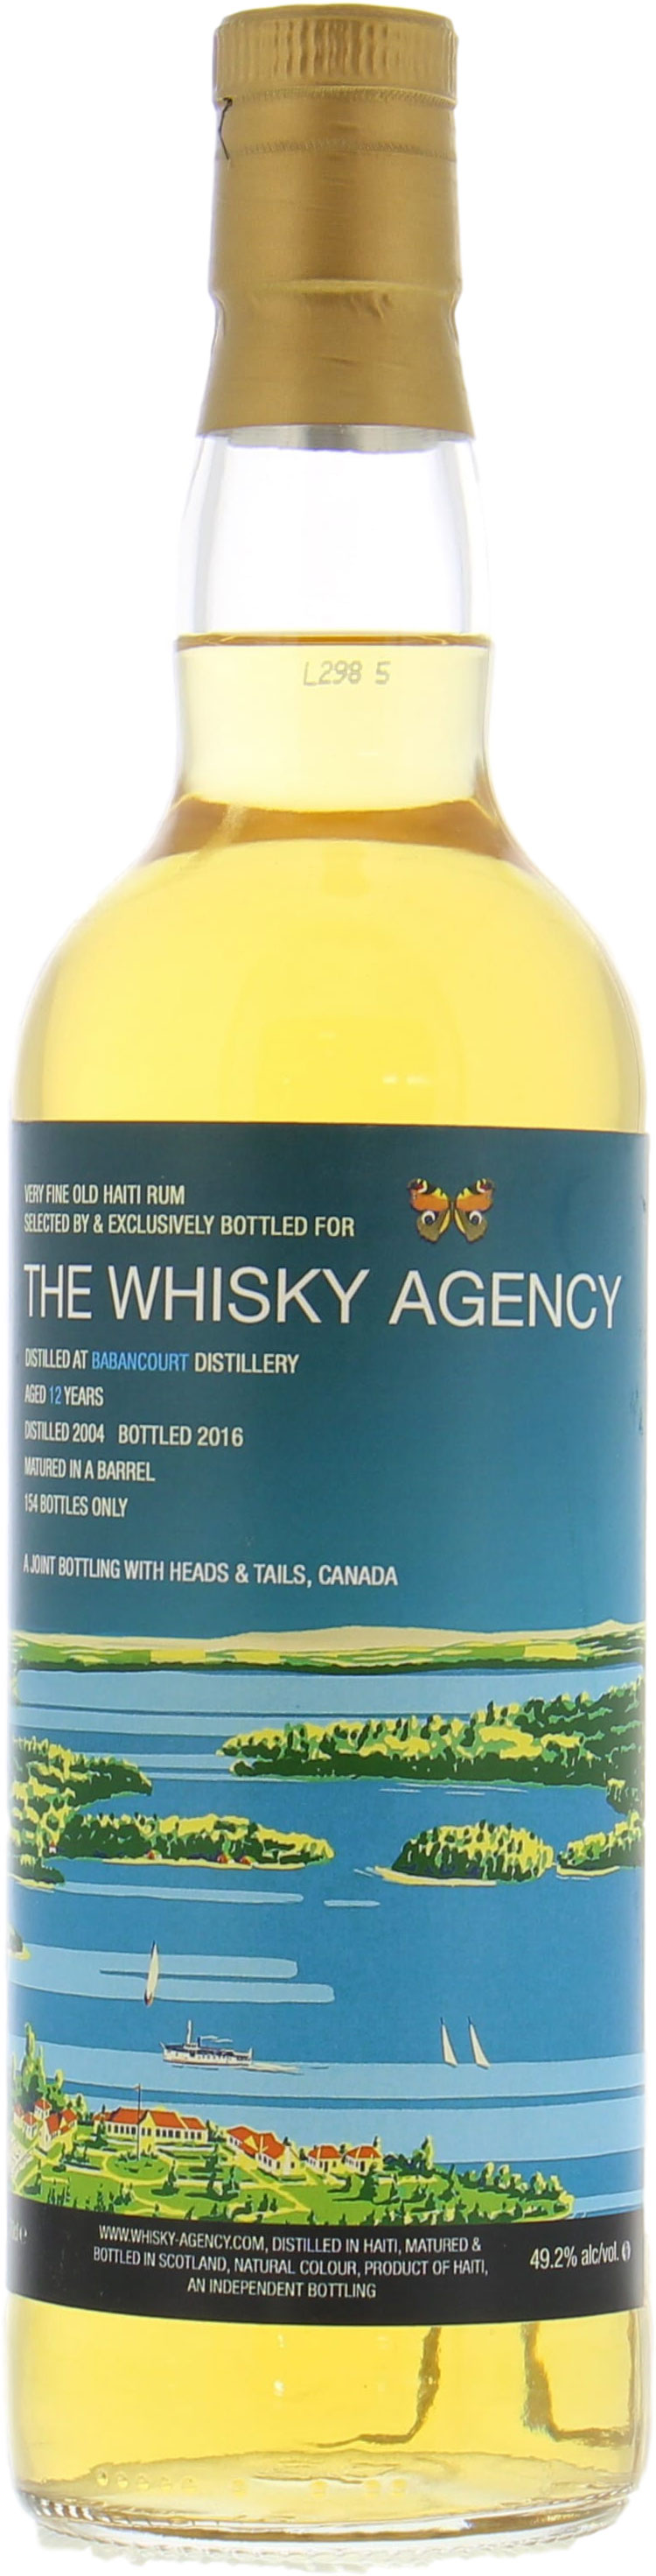 Image of Barbancourt The whisky Agency 12 Years Old 49.2%